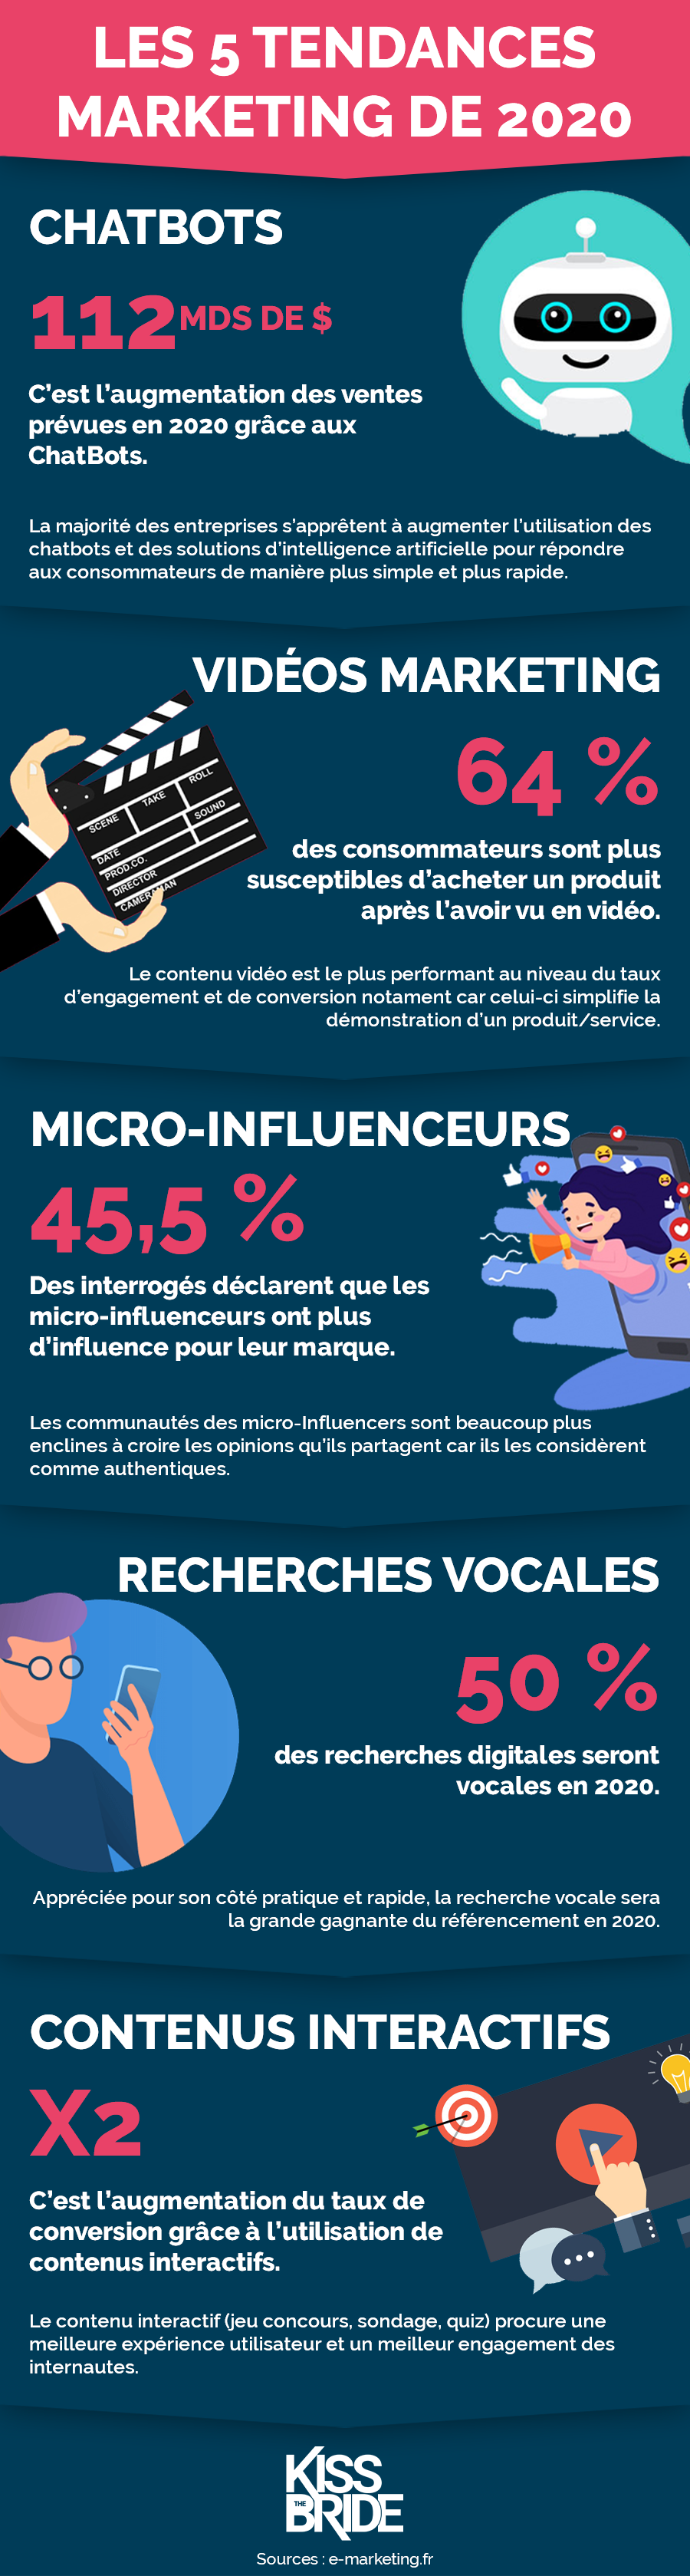 infographie-tendances-marketing-2020